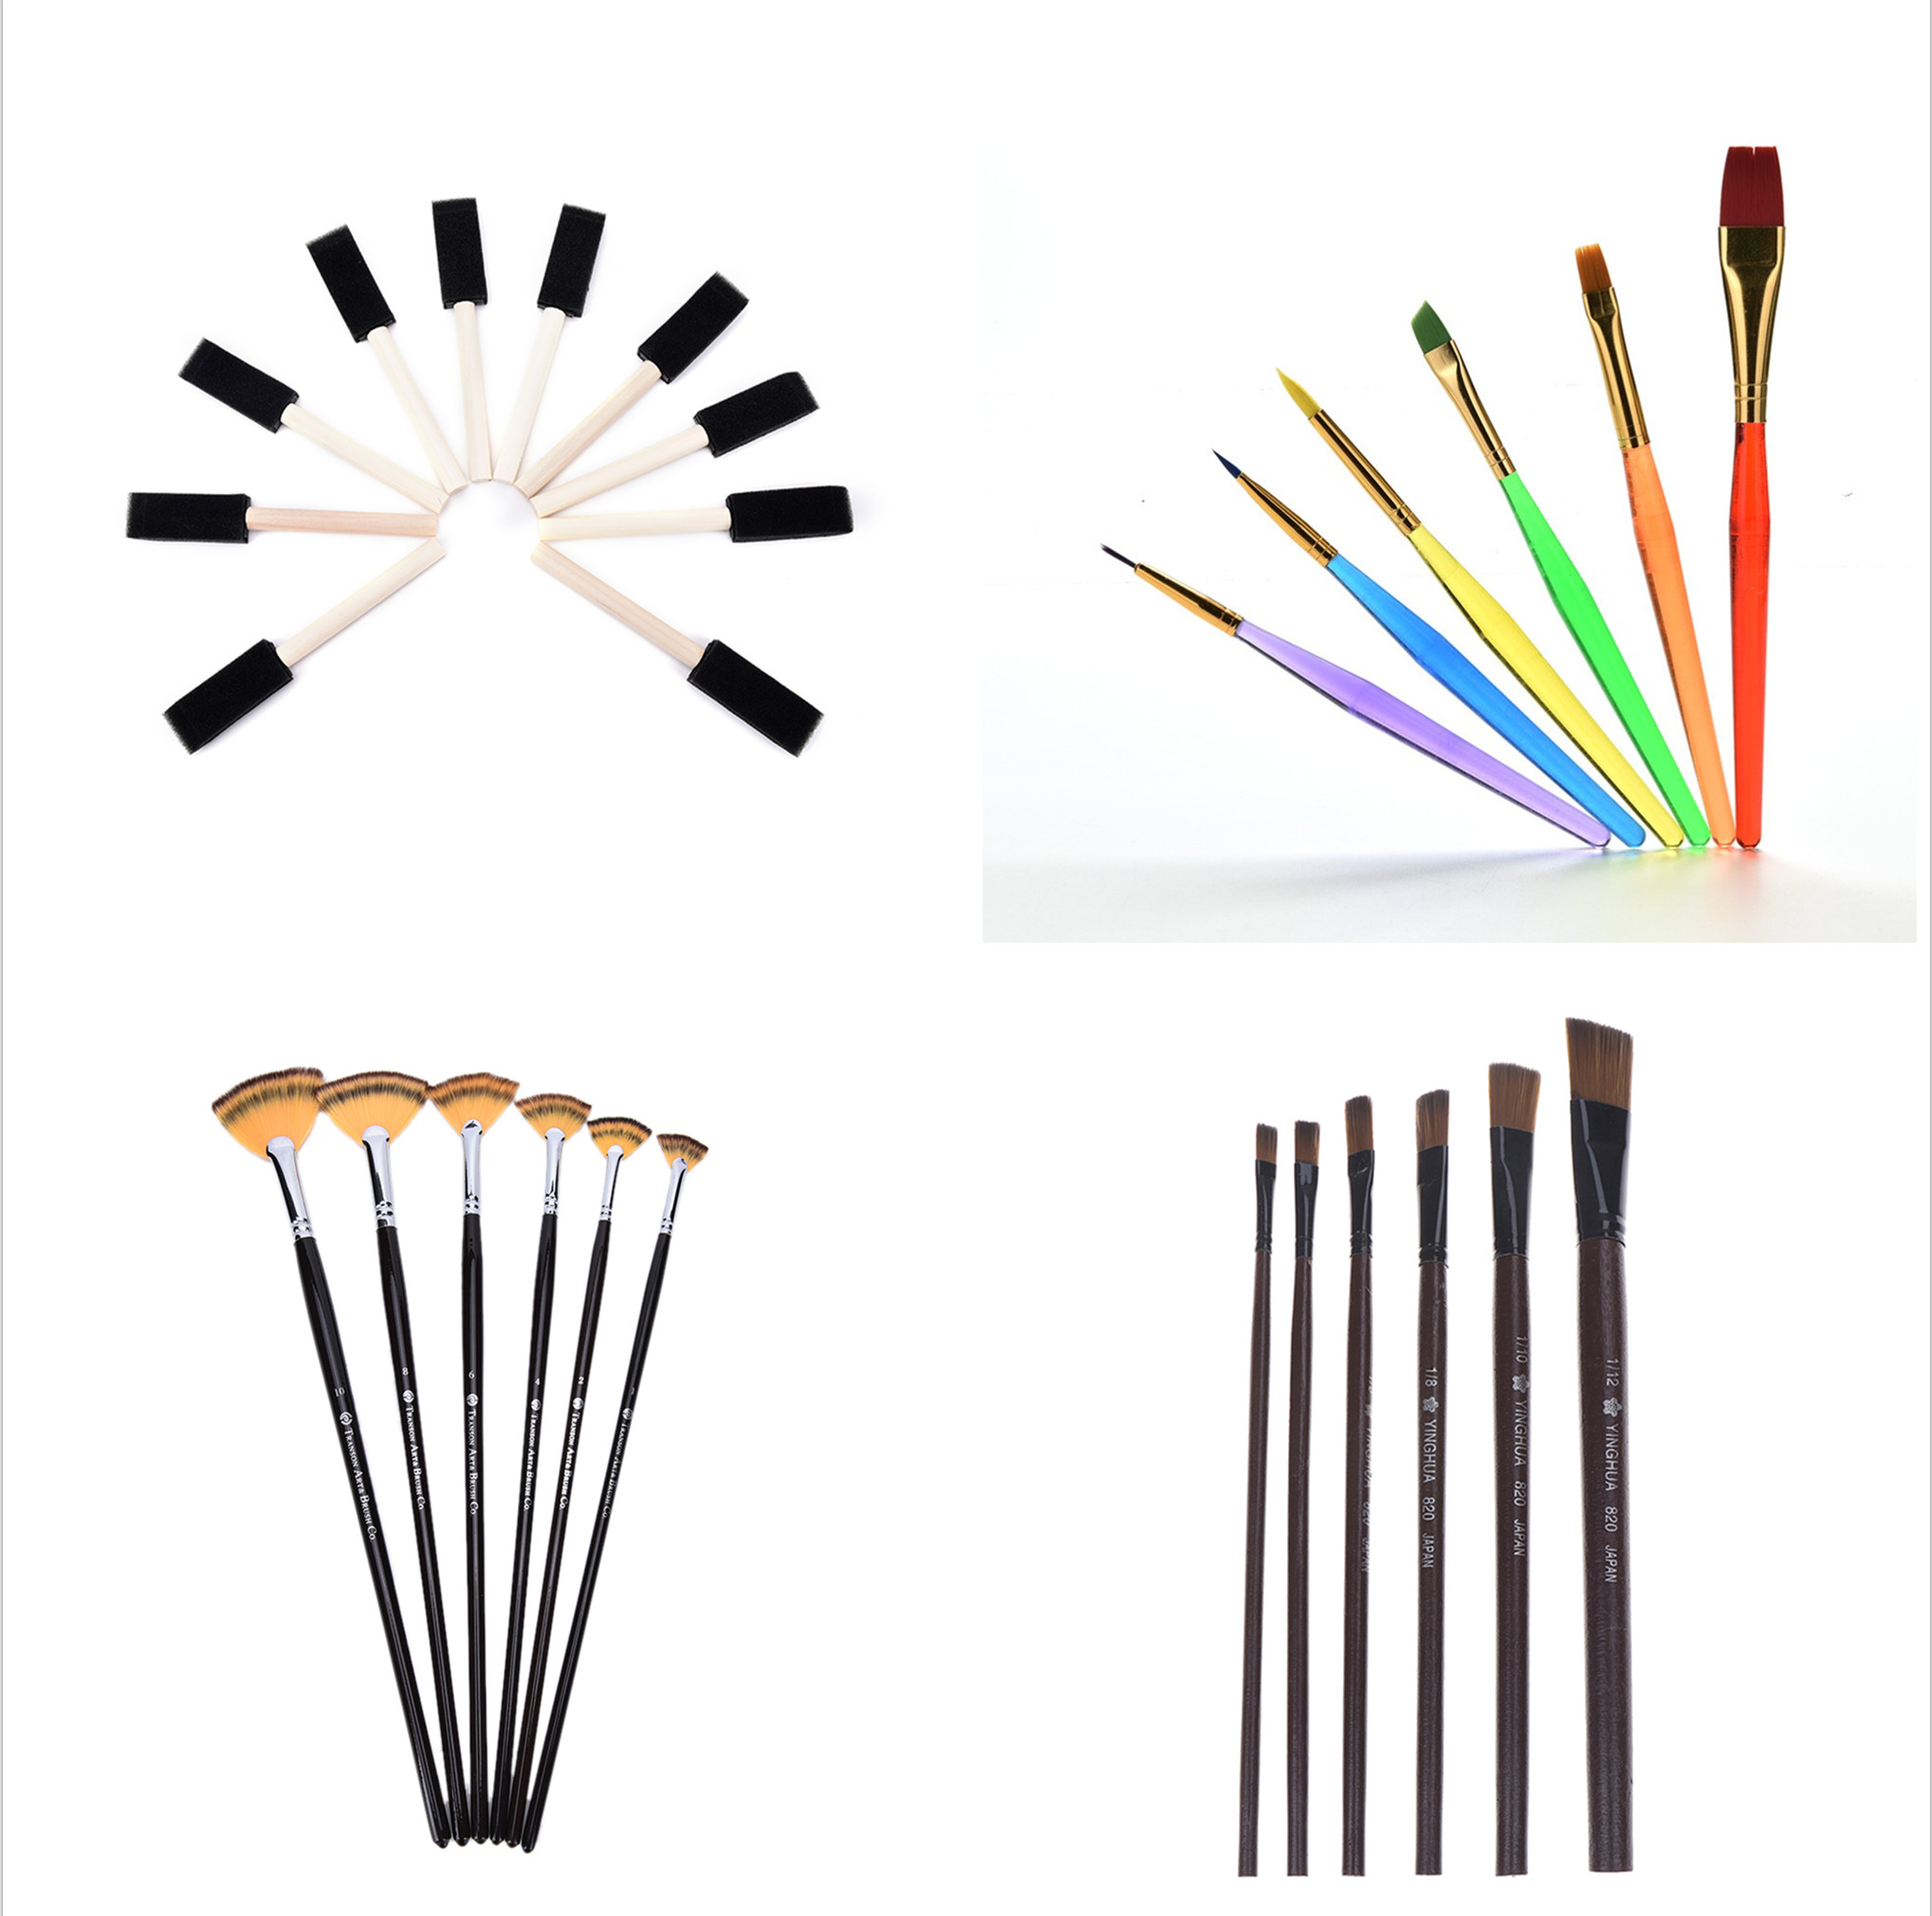 Wooden Handle Foam Brushes Fan-shaped Oil Painting Brushes Set Painting Drawing DIY Craft Draw Brushes 1/6Pcs/10PCS